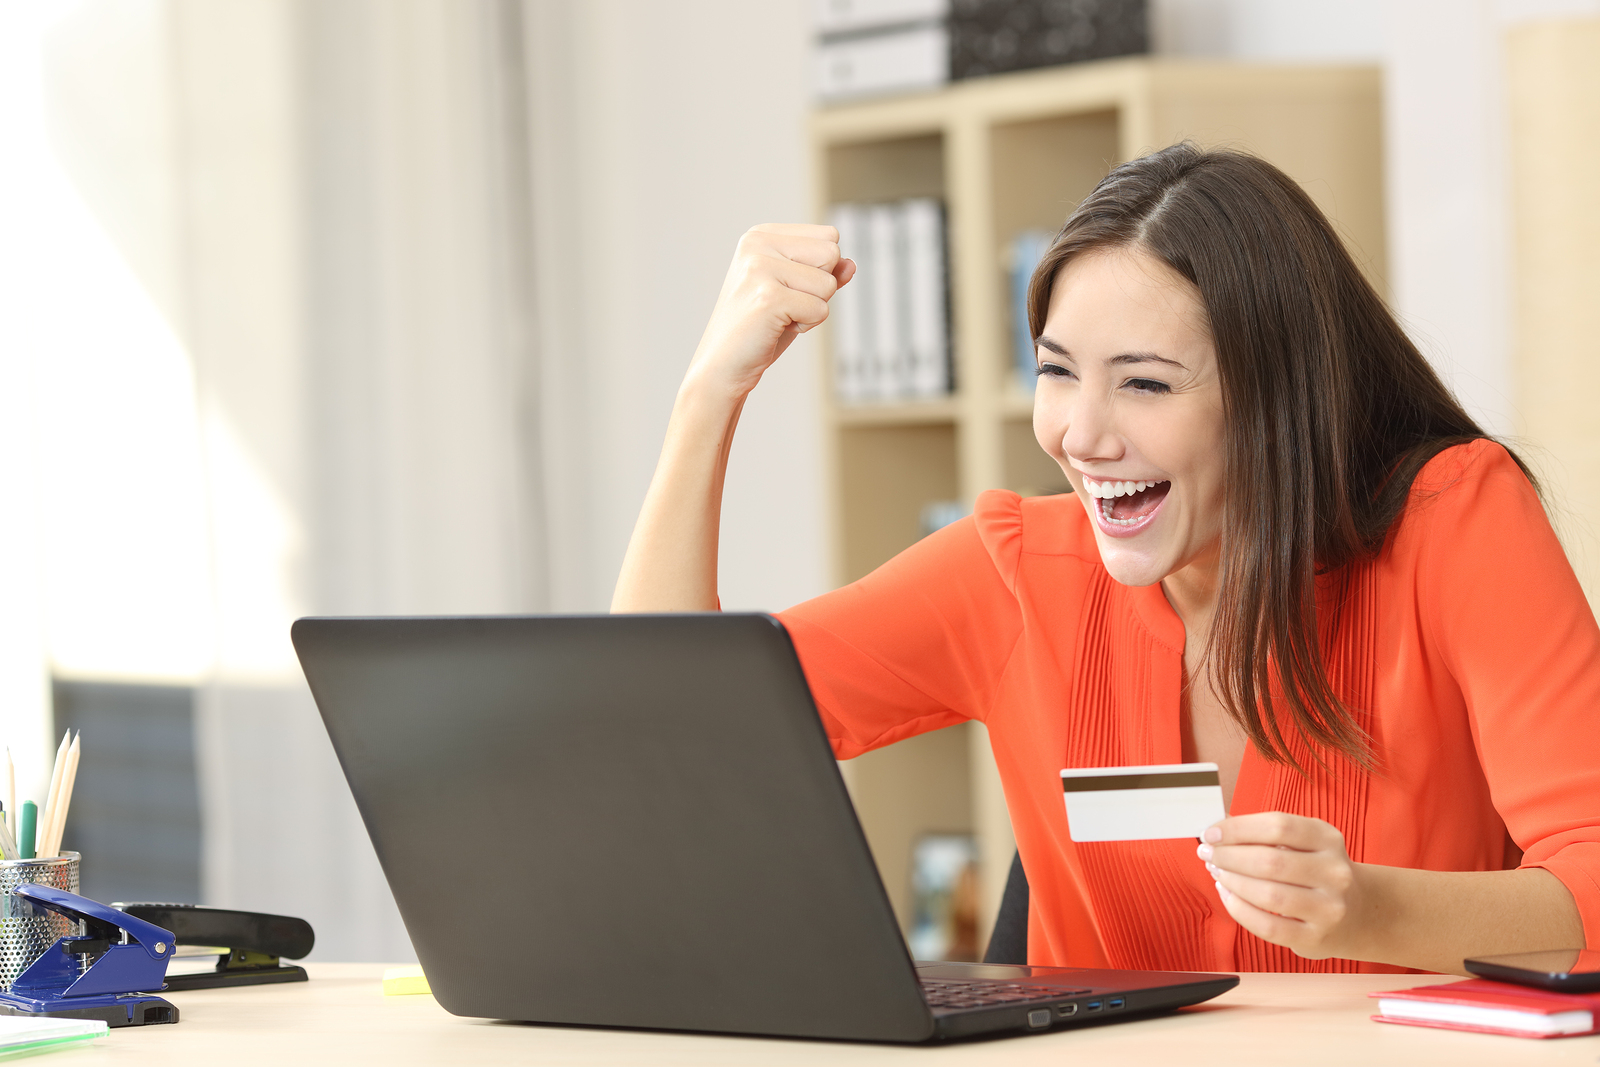 Euphoric shopper buying on line with a laptop and a credit card at home or office bigstock-131212394-2